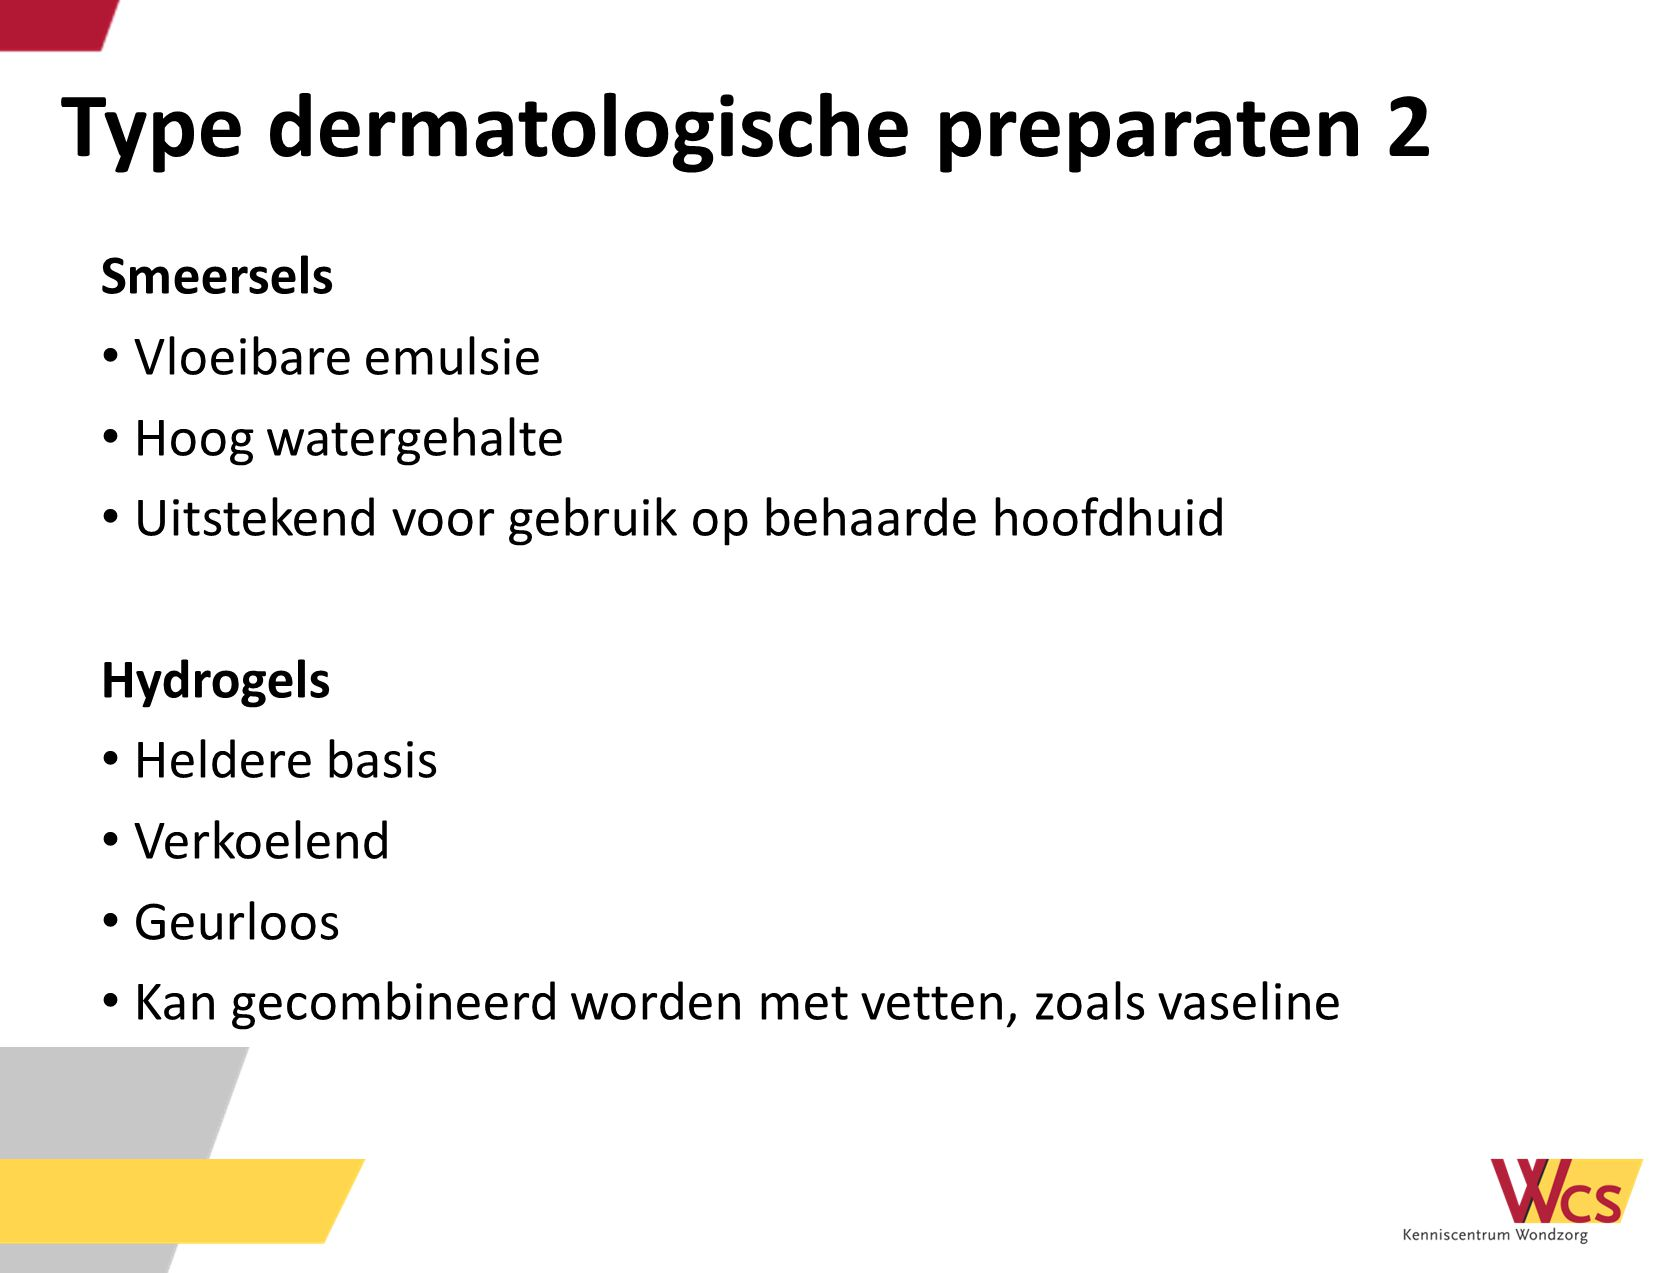 Type dermatologische preparaten 2